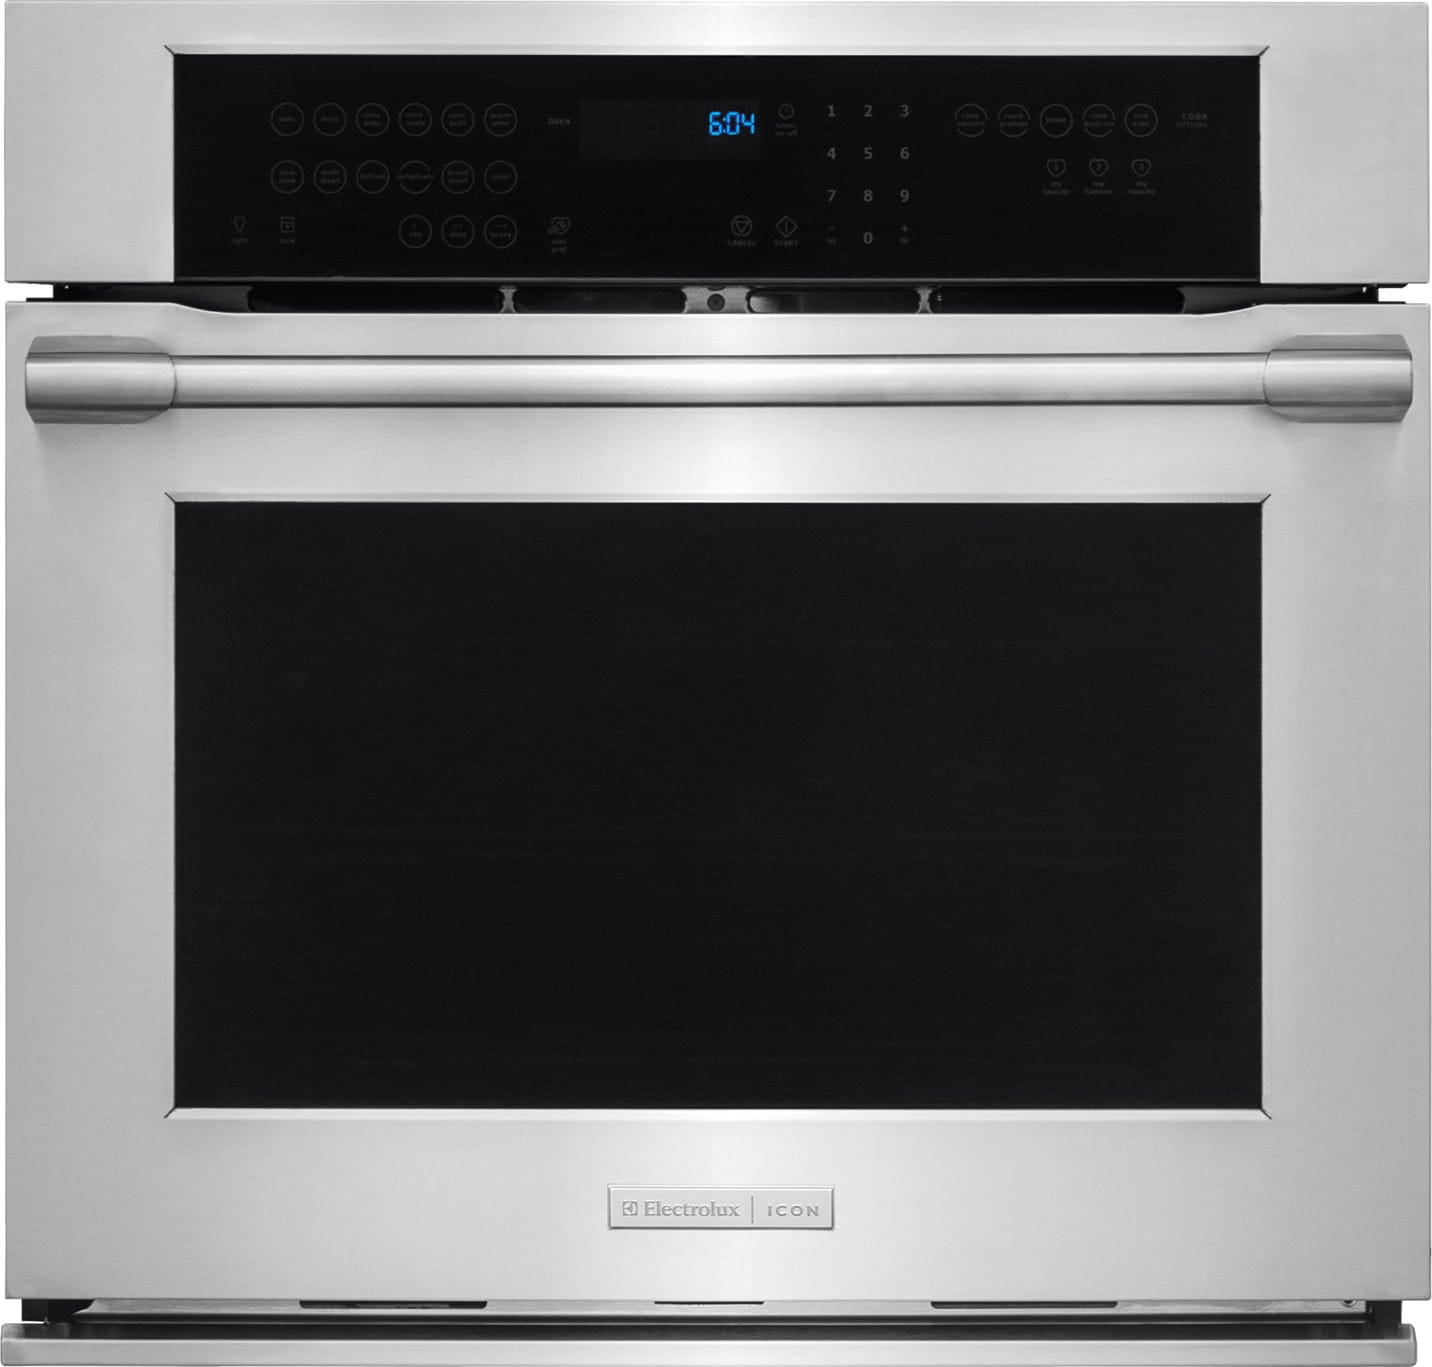 Electrolux E30ew75pps 30 Inch Single Electric Wall Oven